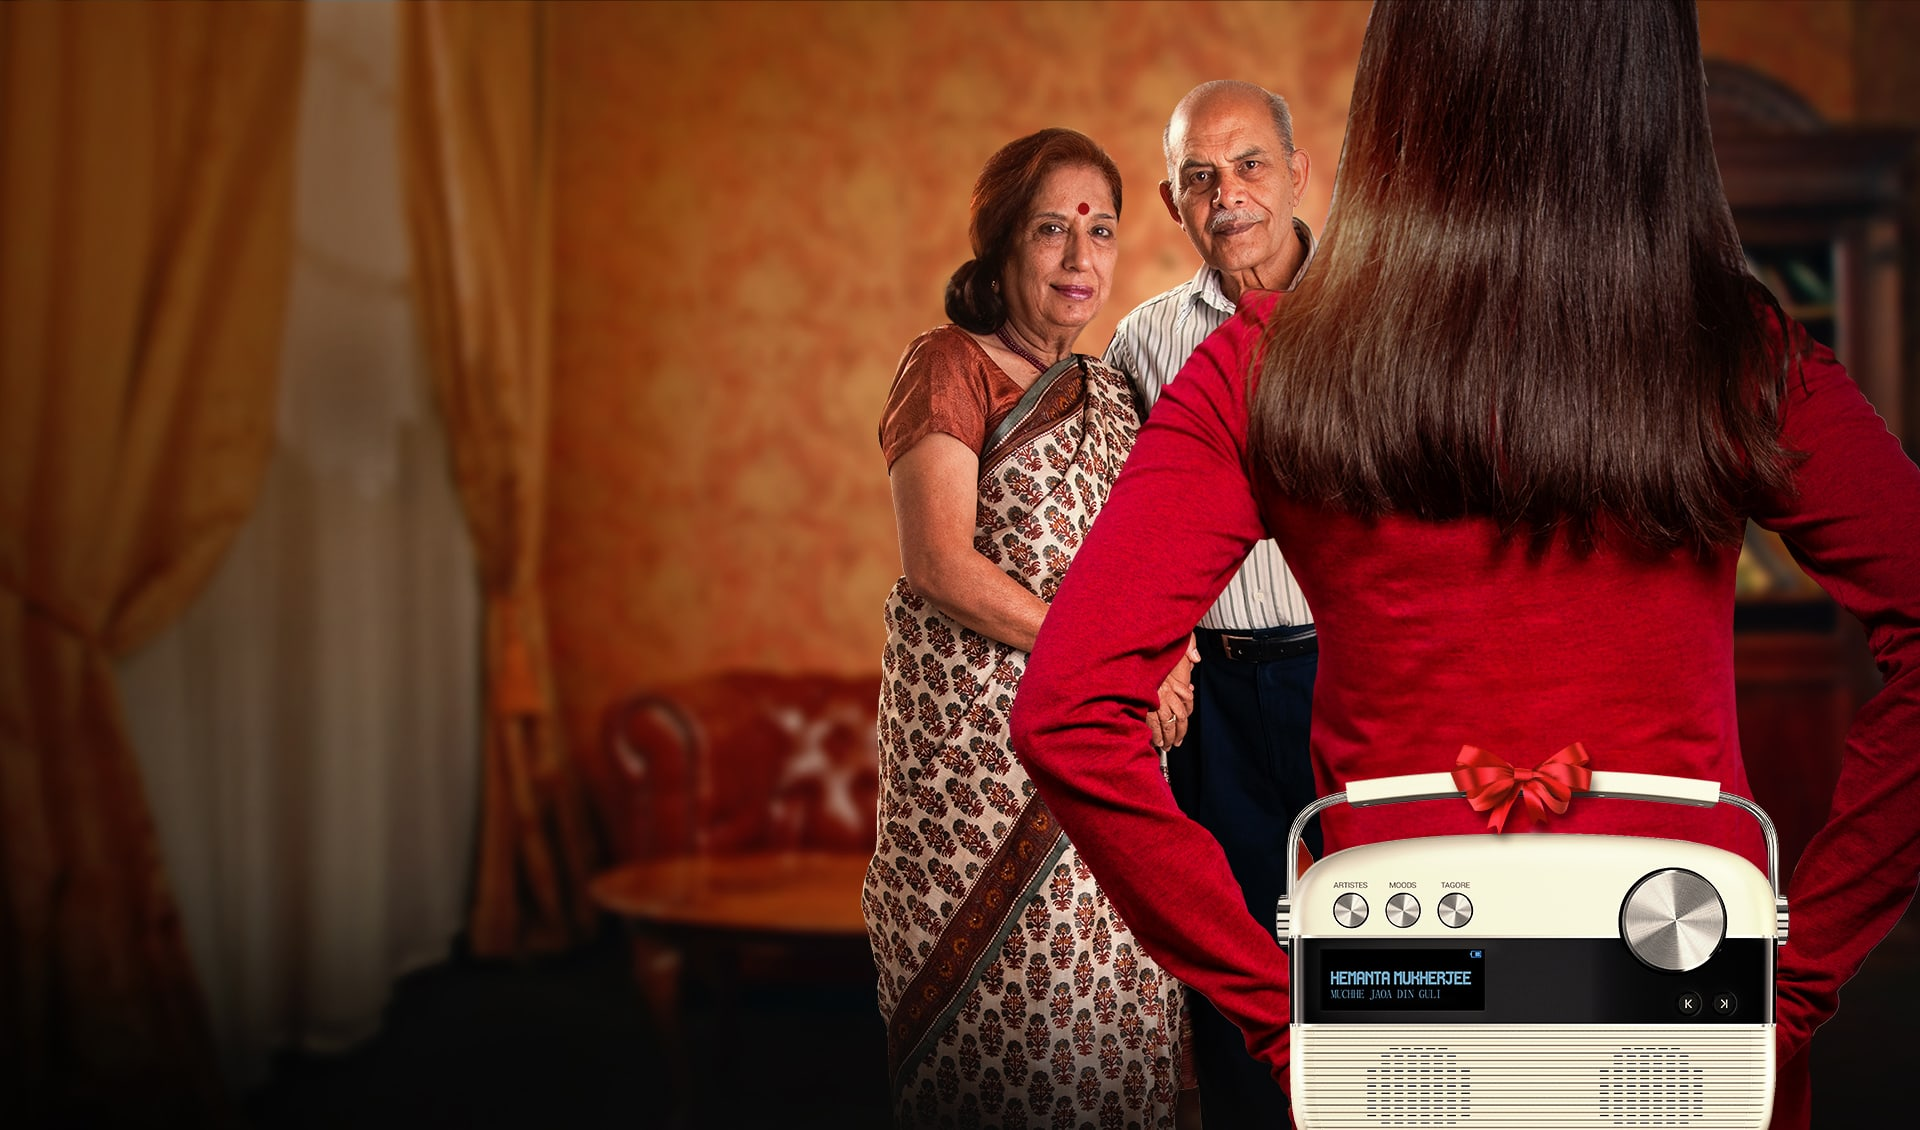 daughter gifting saregama carvaan to parents